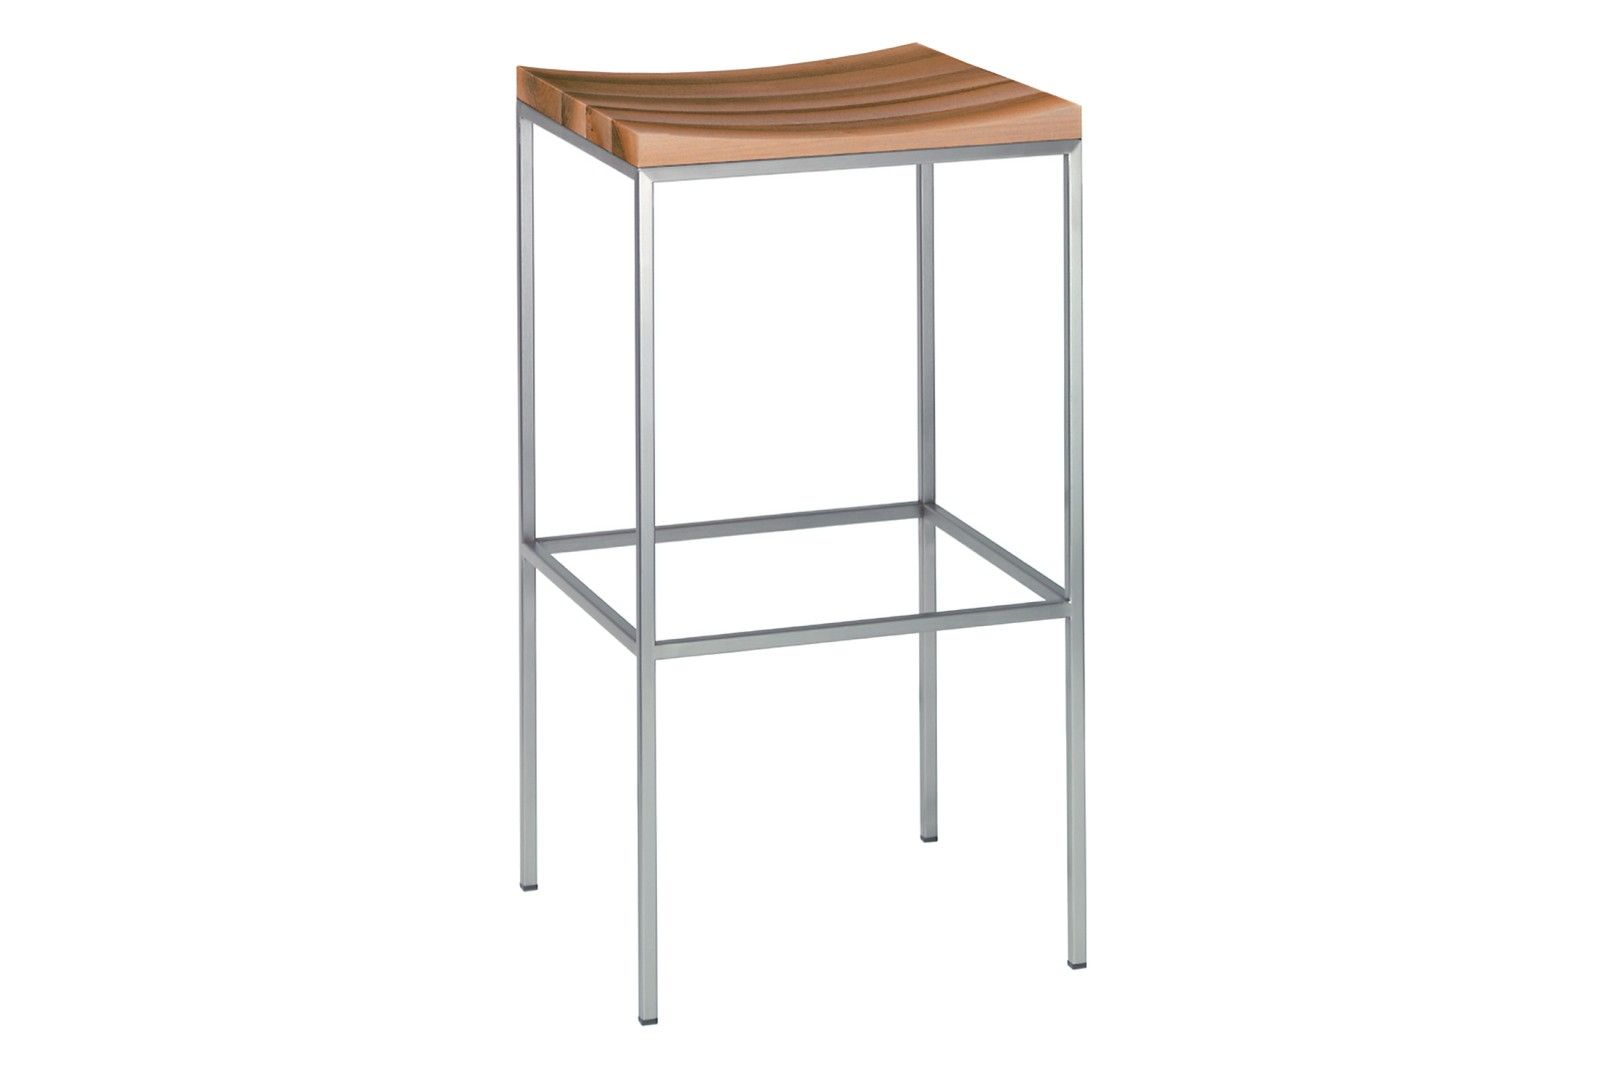 ST07 Grace Stool Oiled Walnut, Stainless Steel, High